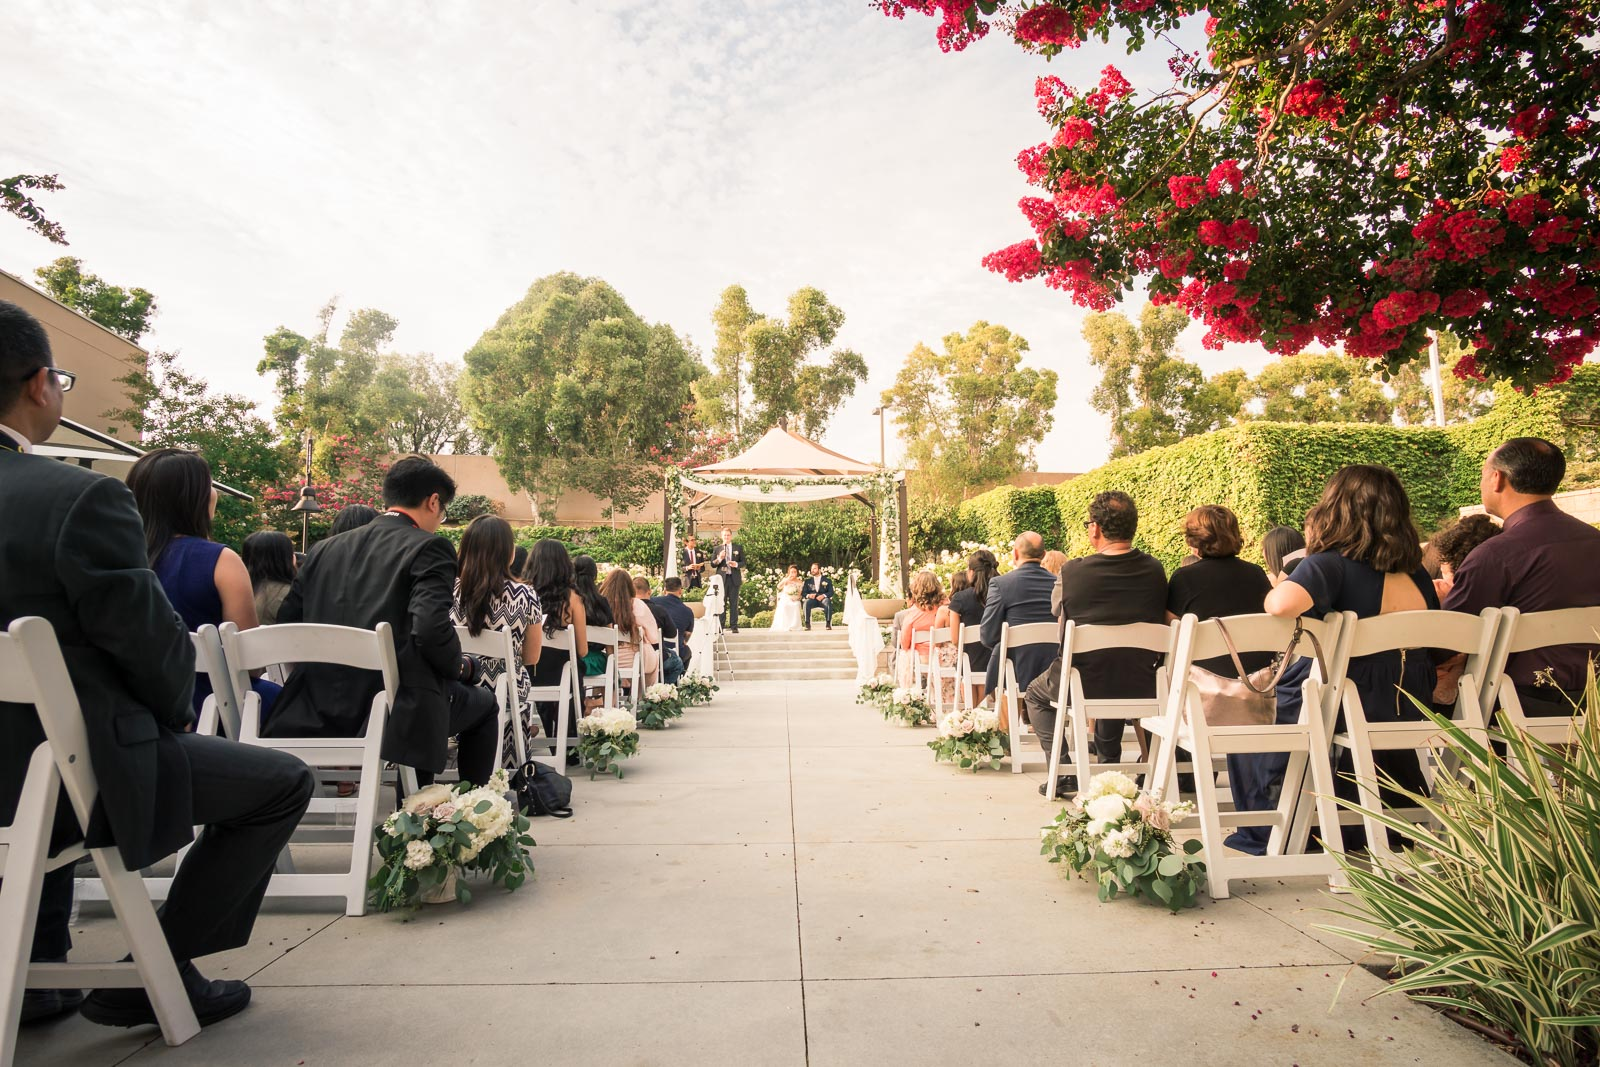 188_Angel-Brea-Orange-County_Joseph-Barber-Wedding-Photography.jpg